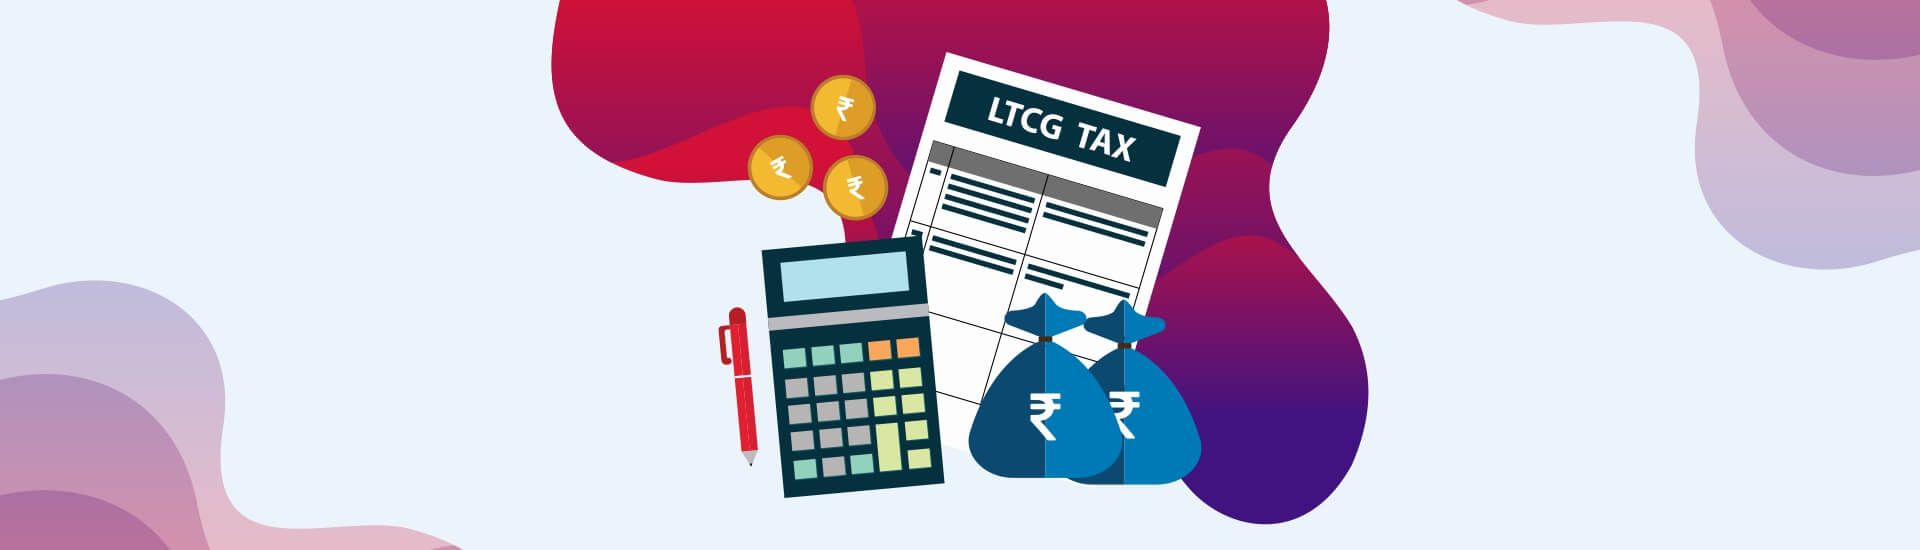 LTCG Tax on Mutual Funds